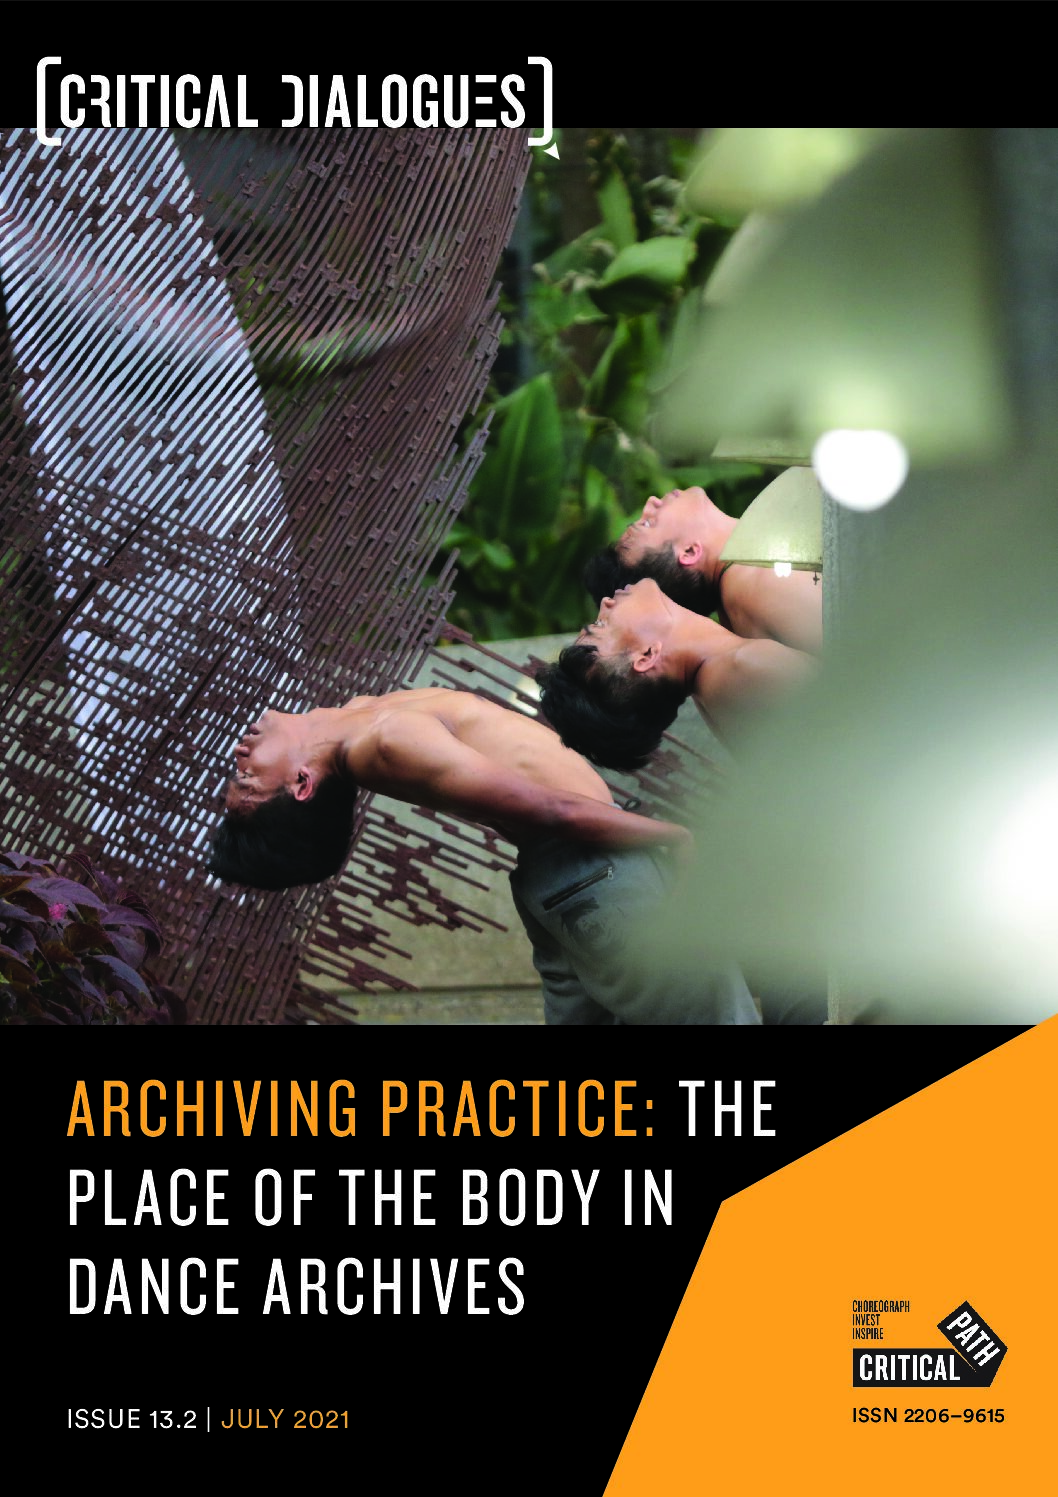 Issue 13.2 | Archiving Practice: The Place of the Body in Dance Archives | July 2021